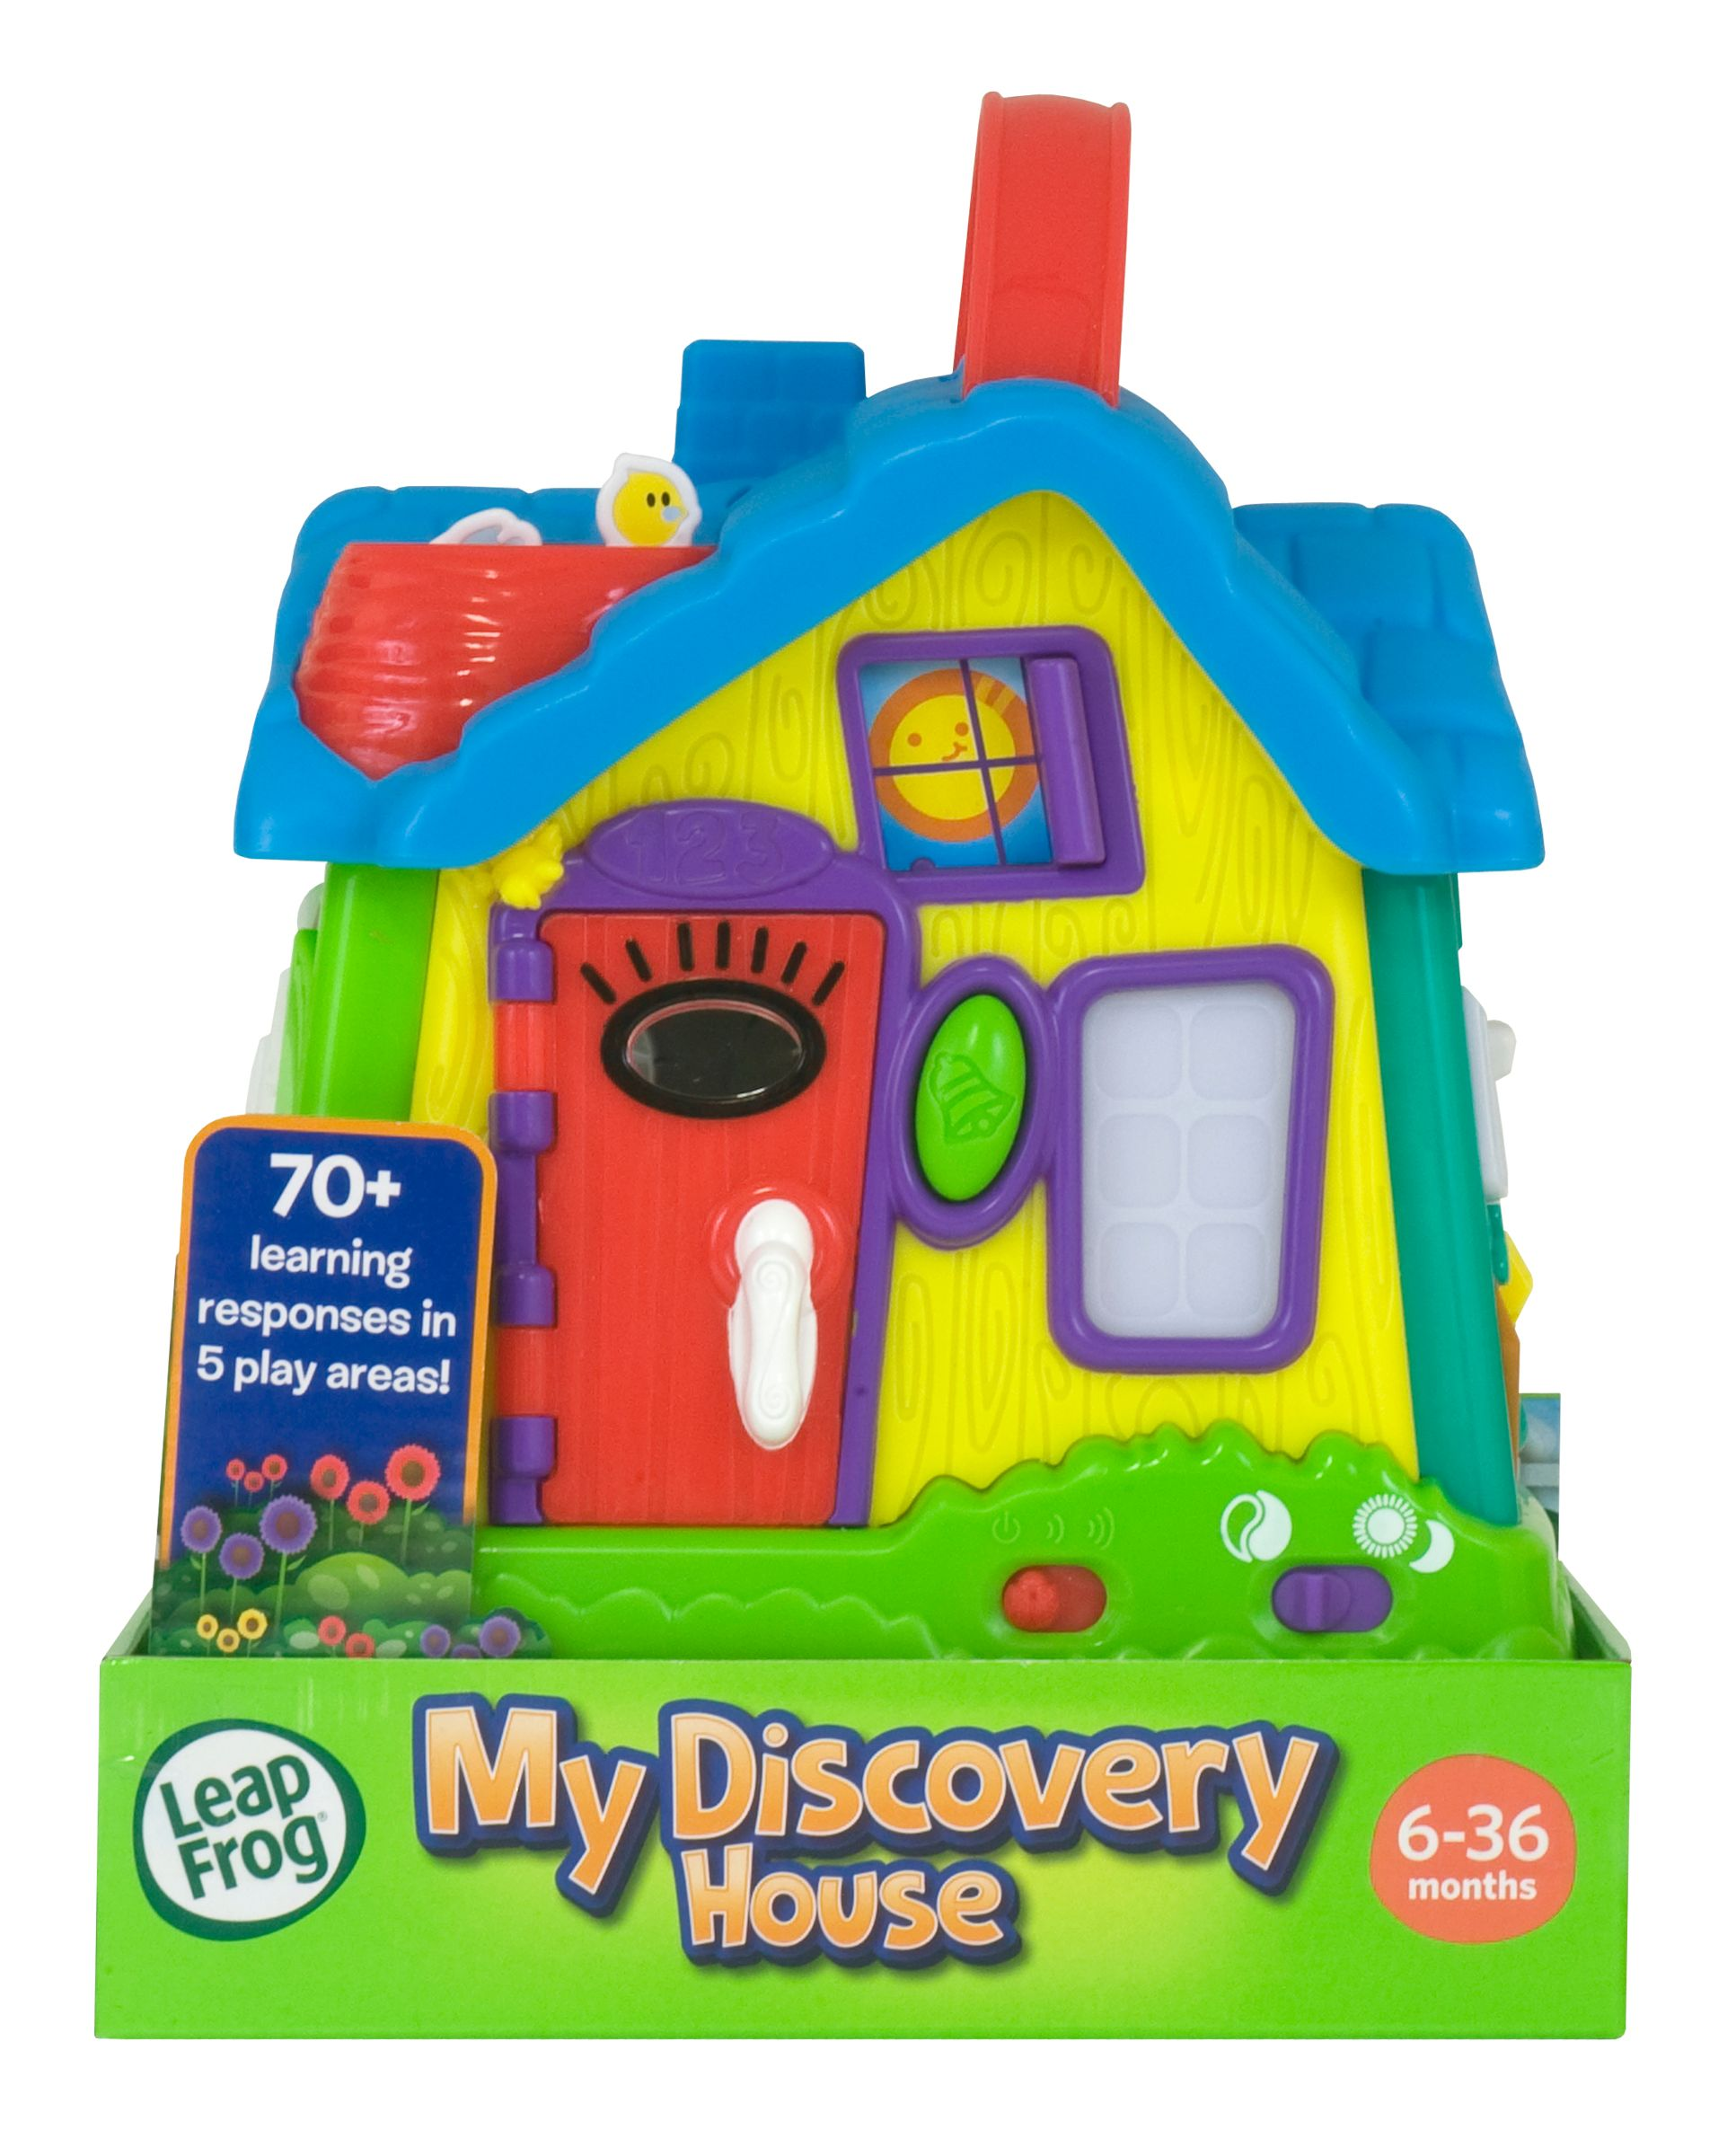 My Discovery House